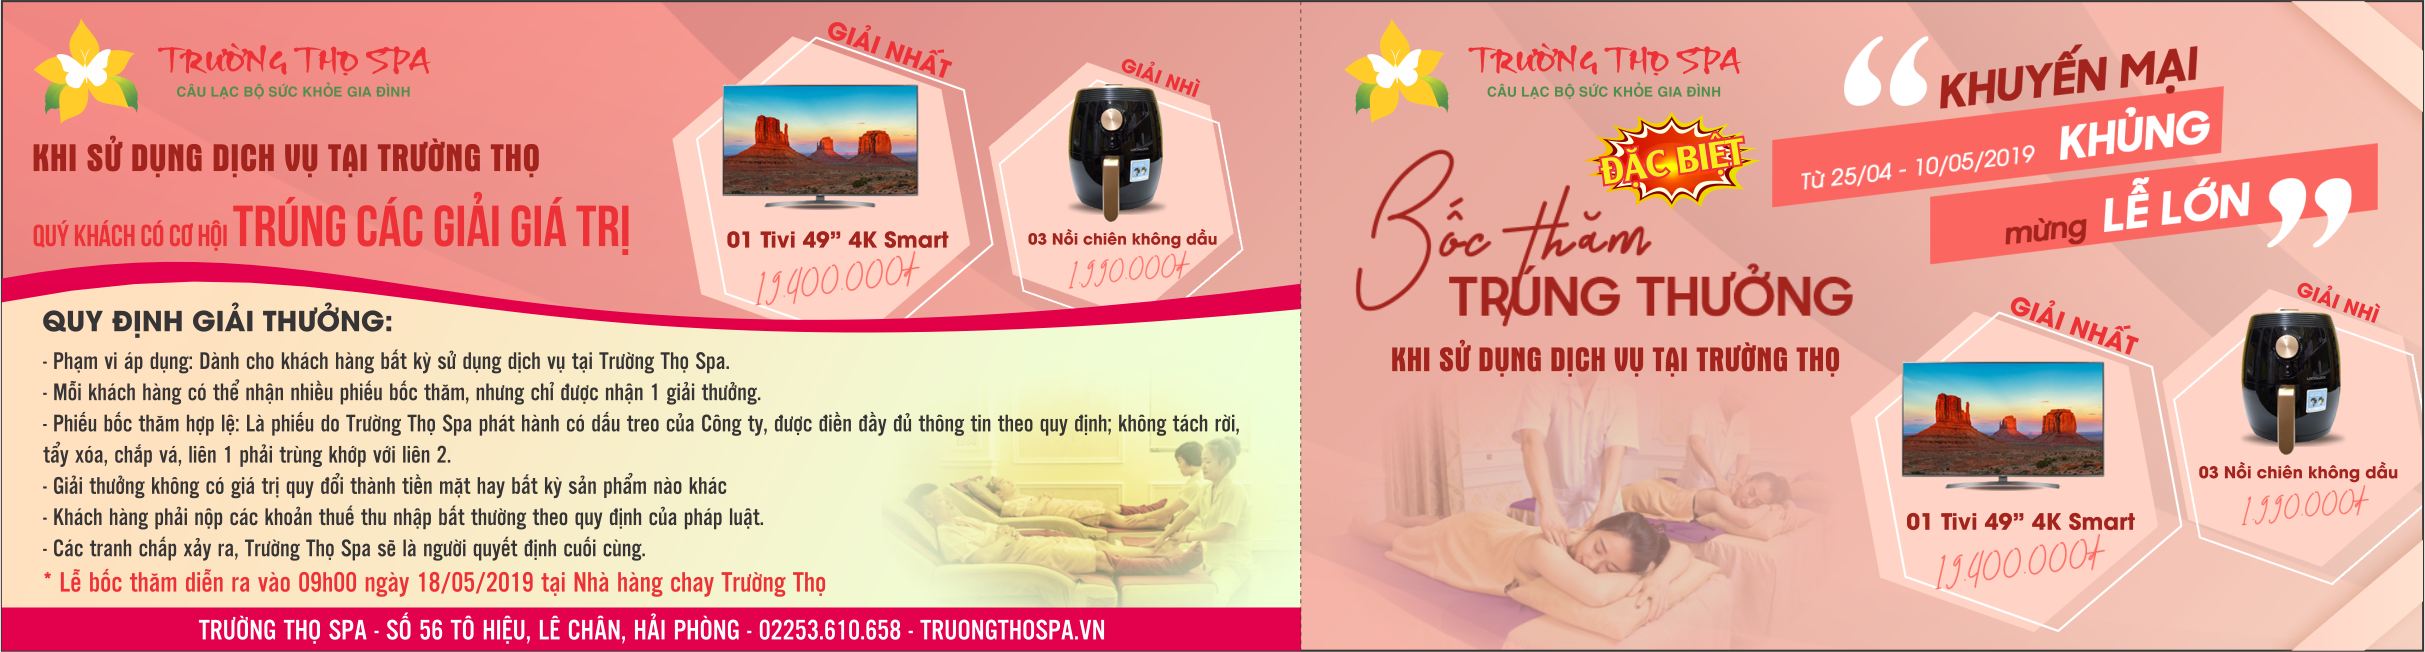 truong-tho-3004-0105-pbt.png